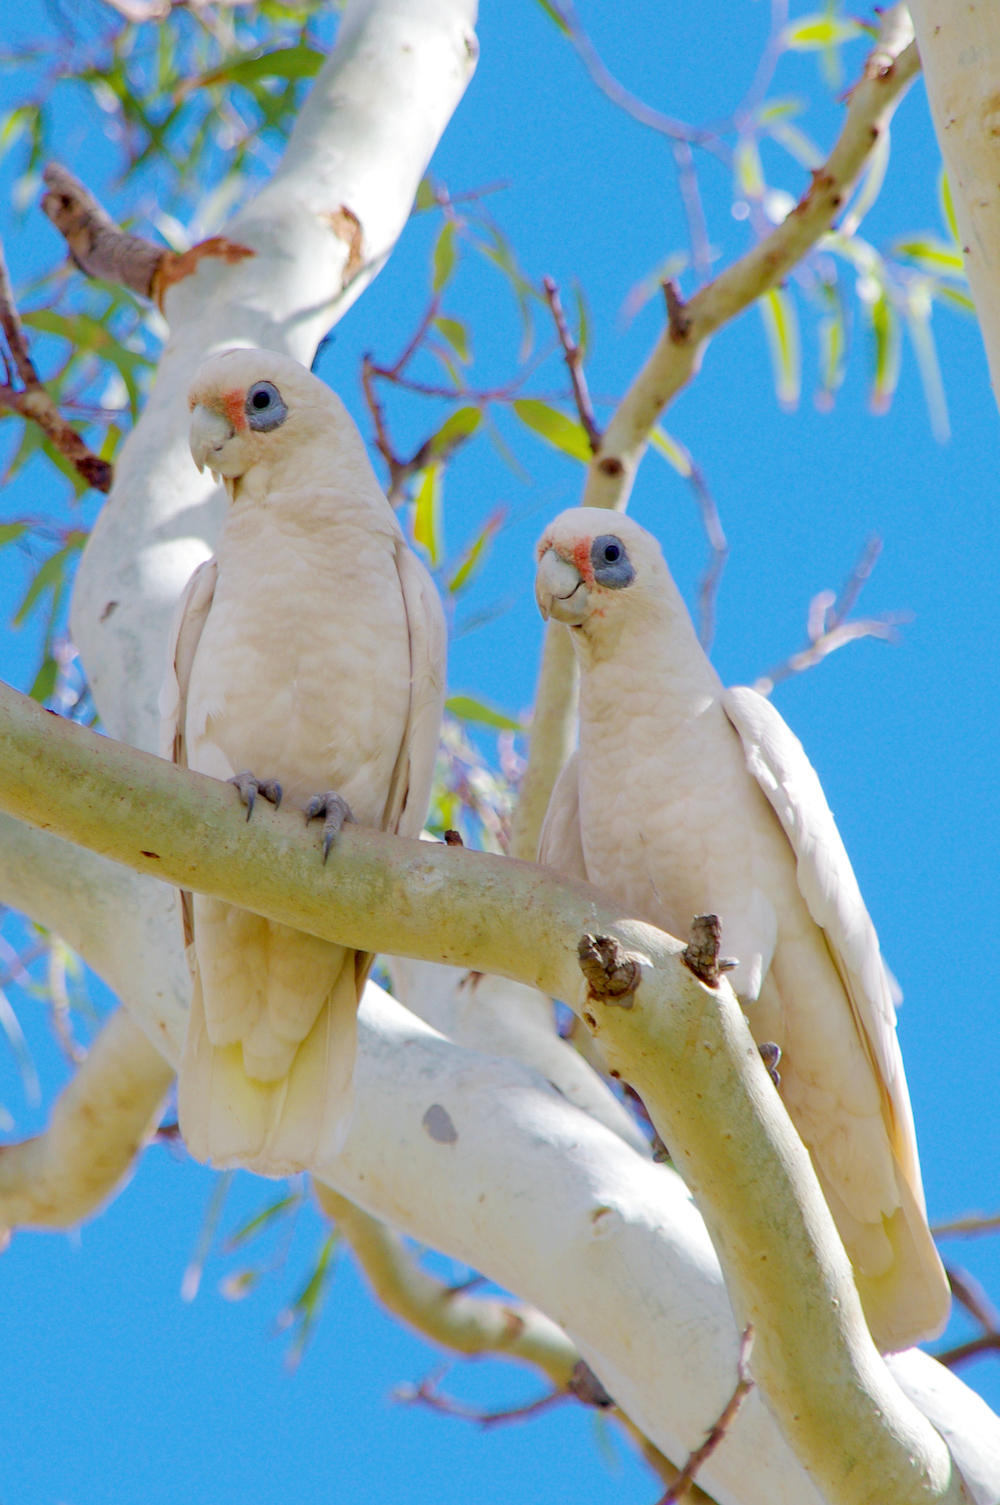 The City of Greater Geraldton will try a new type of deterrent to relocate the masses of corellas.